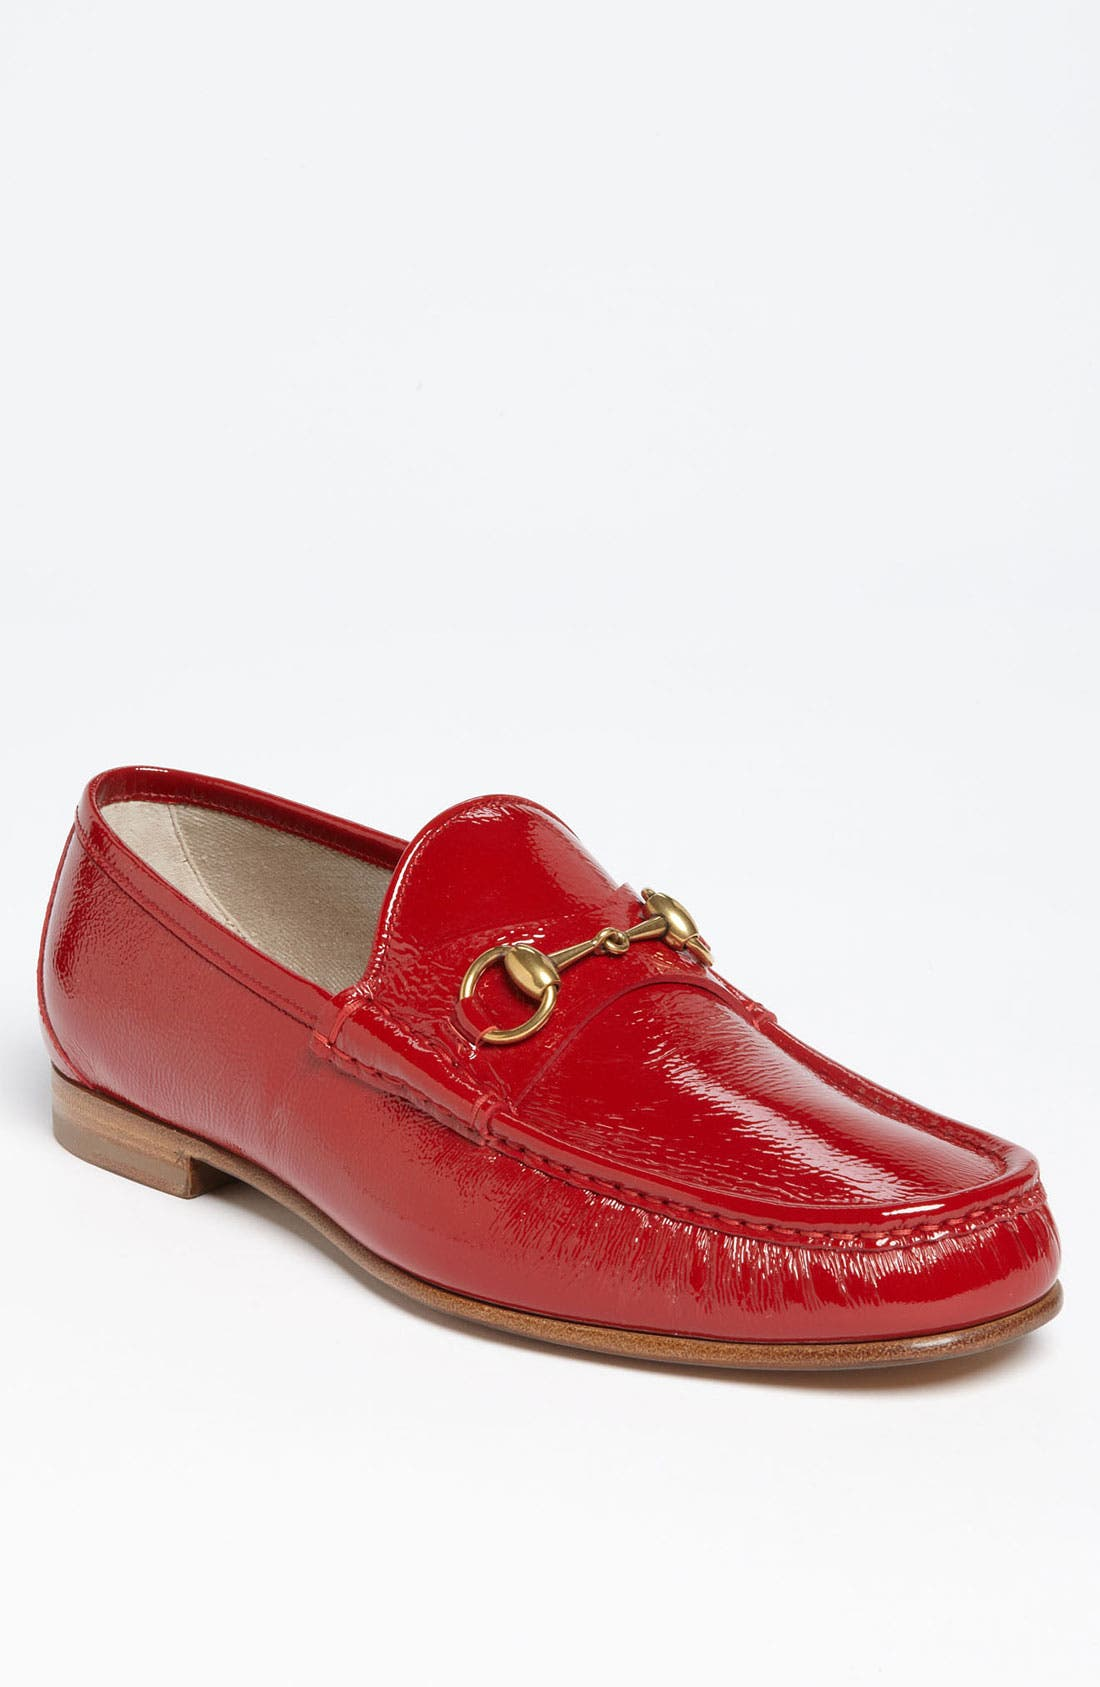 Alternate Image 1 Selected - Gucci 'Roos' Patent Bit Loafer